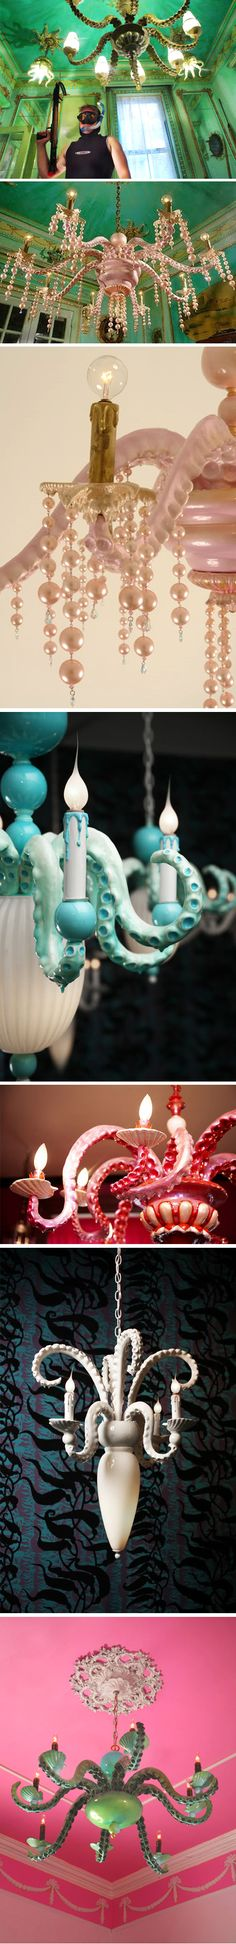 adam wallacavage tentacle chandeliers, pretty and creepy at the same time Home Design, Art Design, Home And Deco, Art Furniture, Tentacle, My New Room, Home Interior, Kitsch, Artsy Fartsy